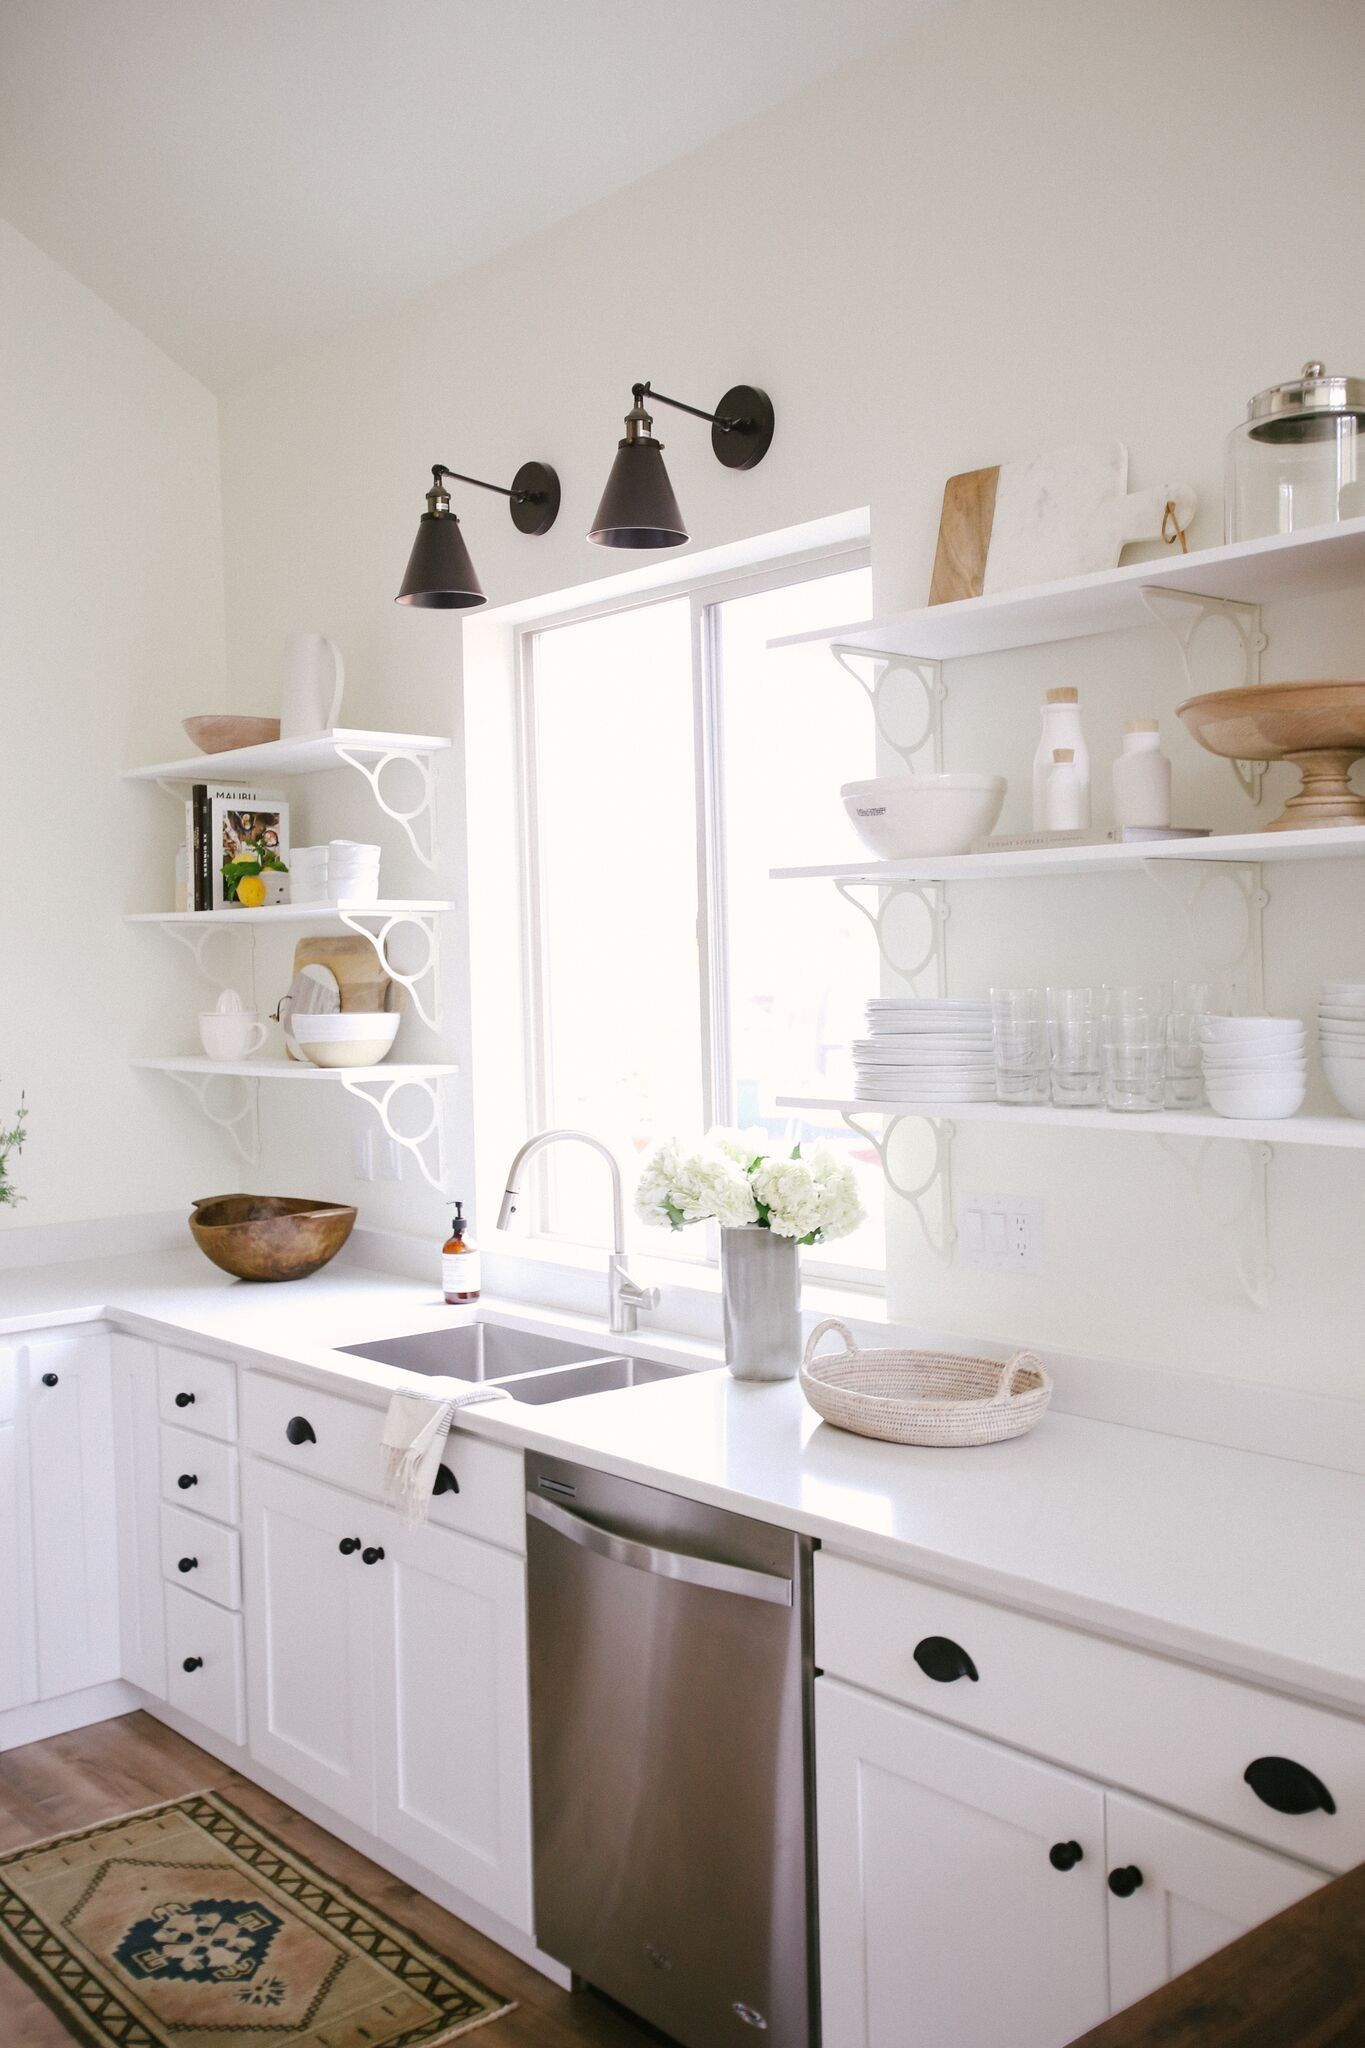 A Clean Smart And Chic White Kitchen Nook With Small Wall Sconces